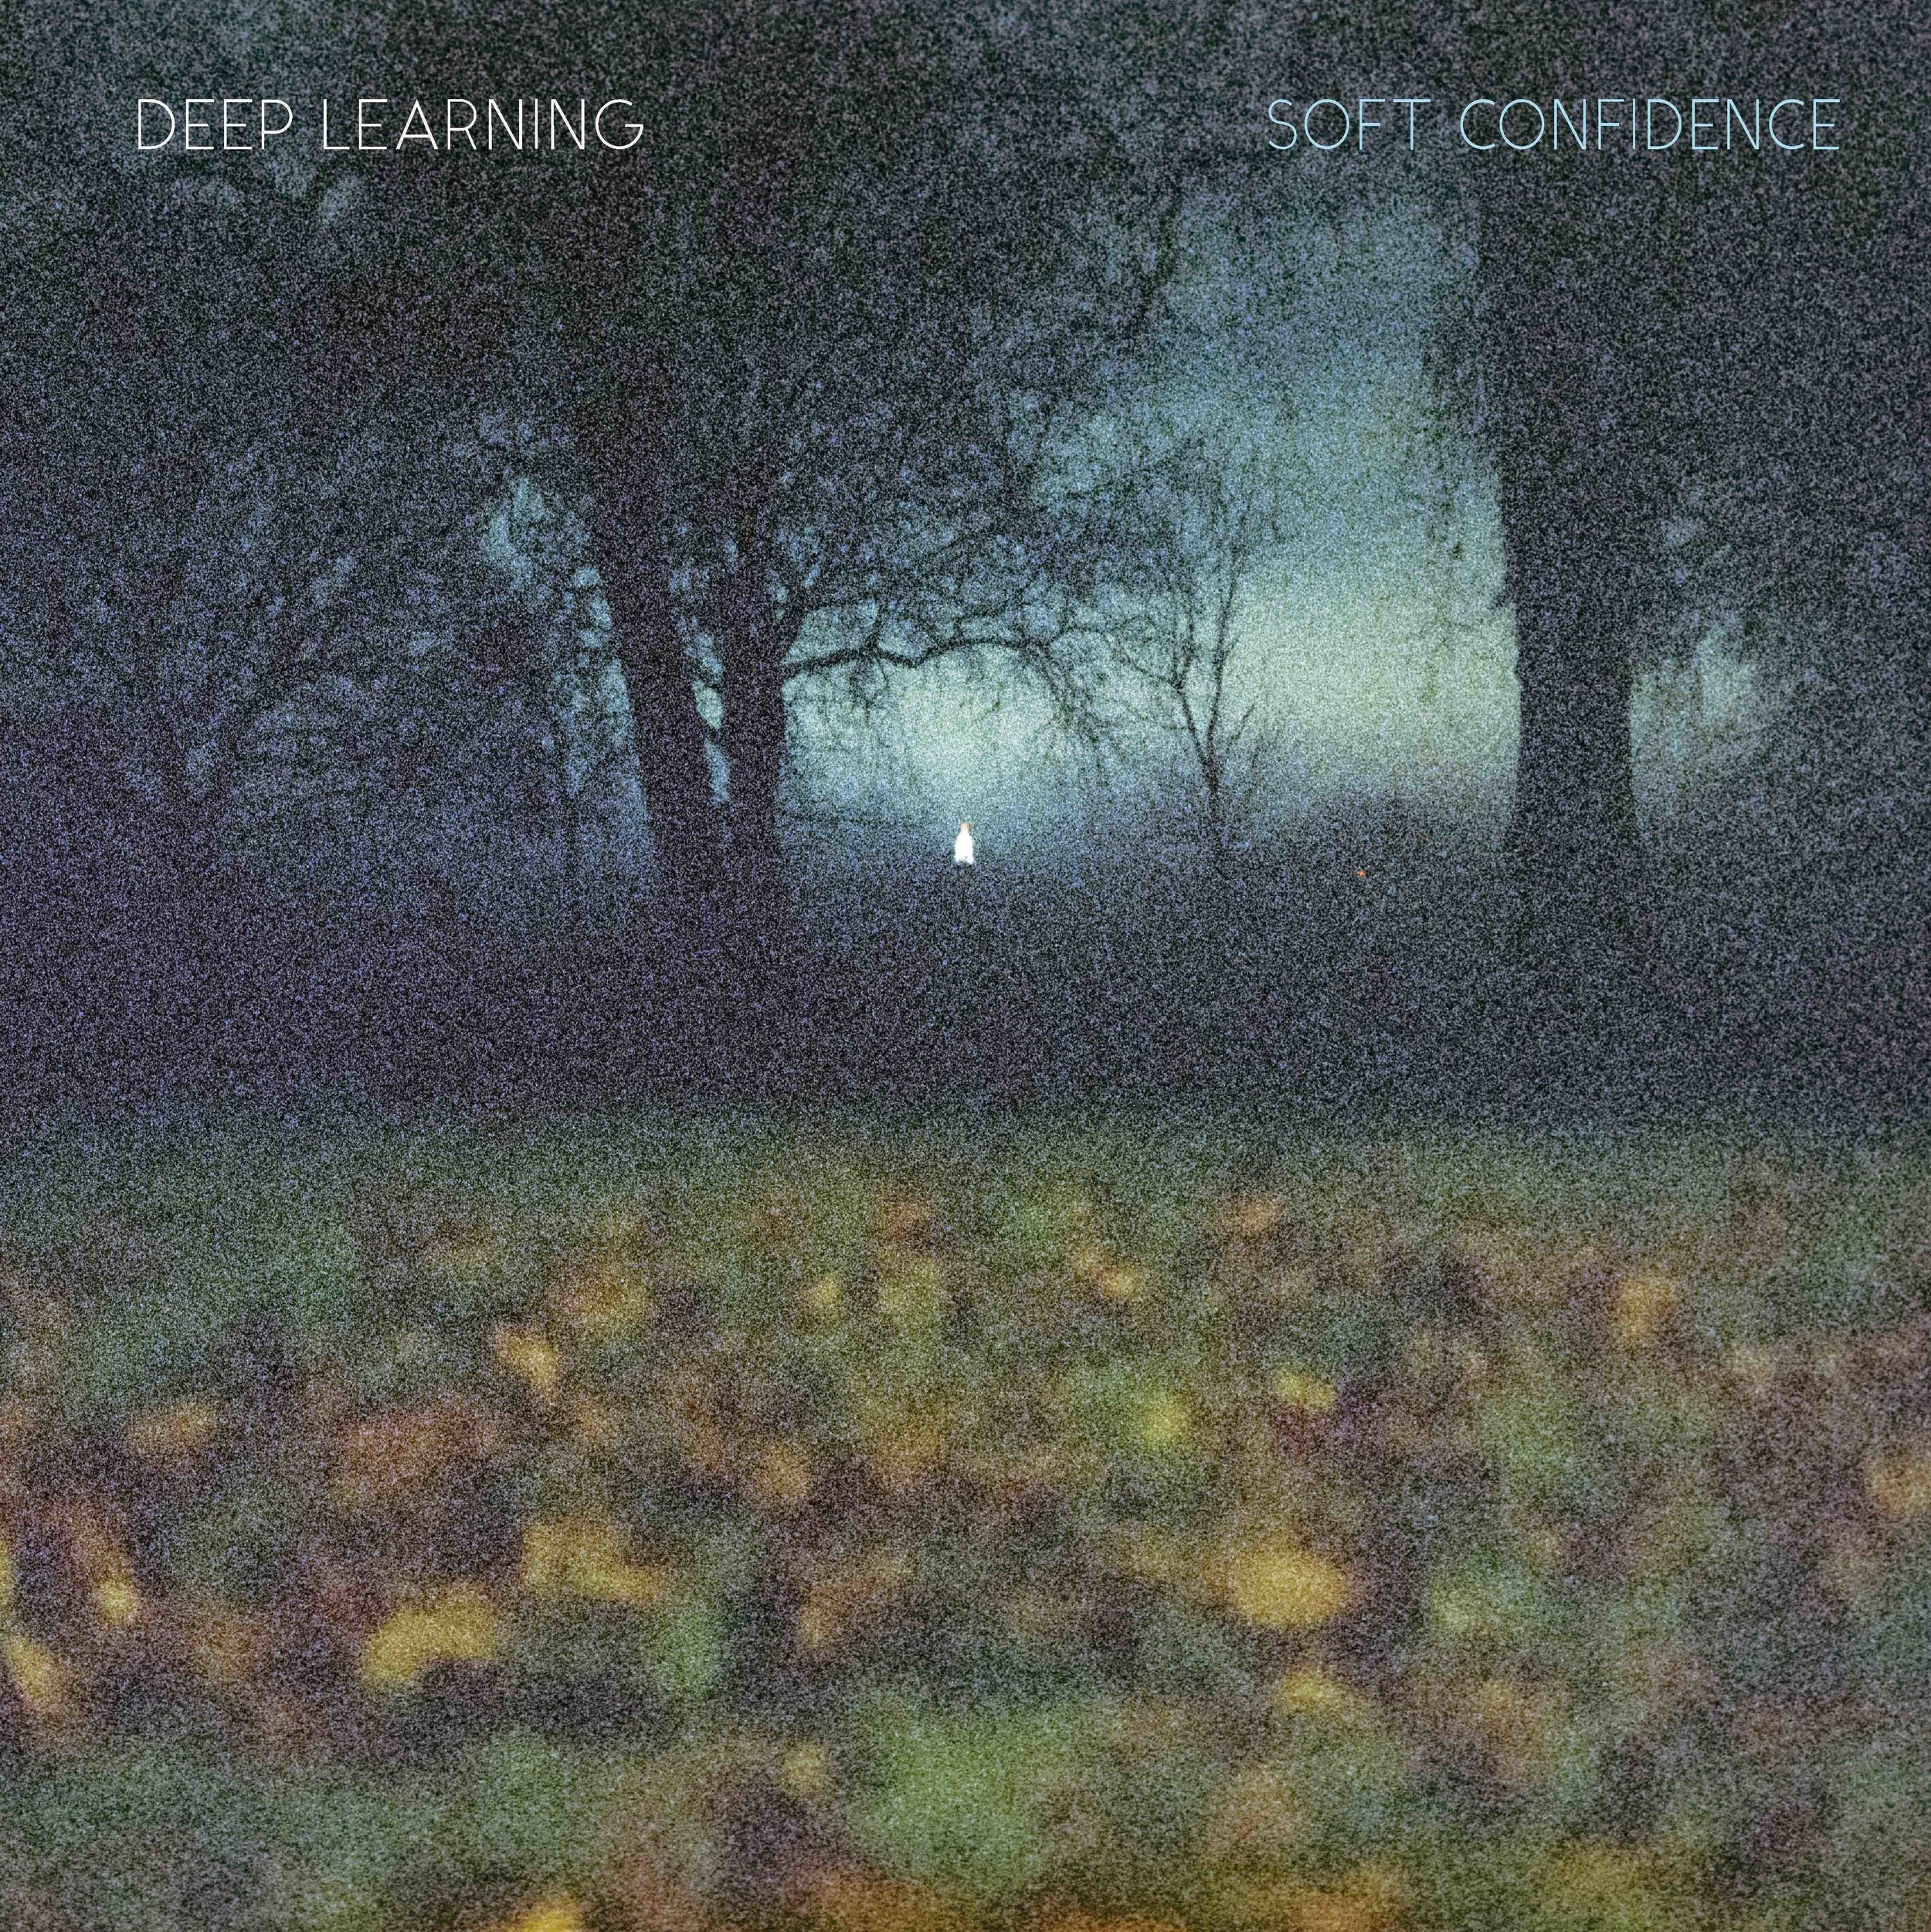 SU001-Deep Learning-Soft Confidence FrontCover.jpg